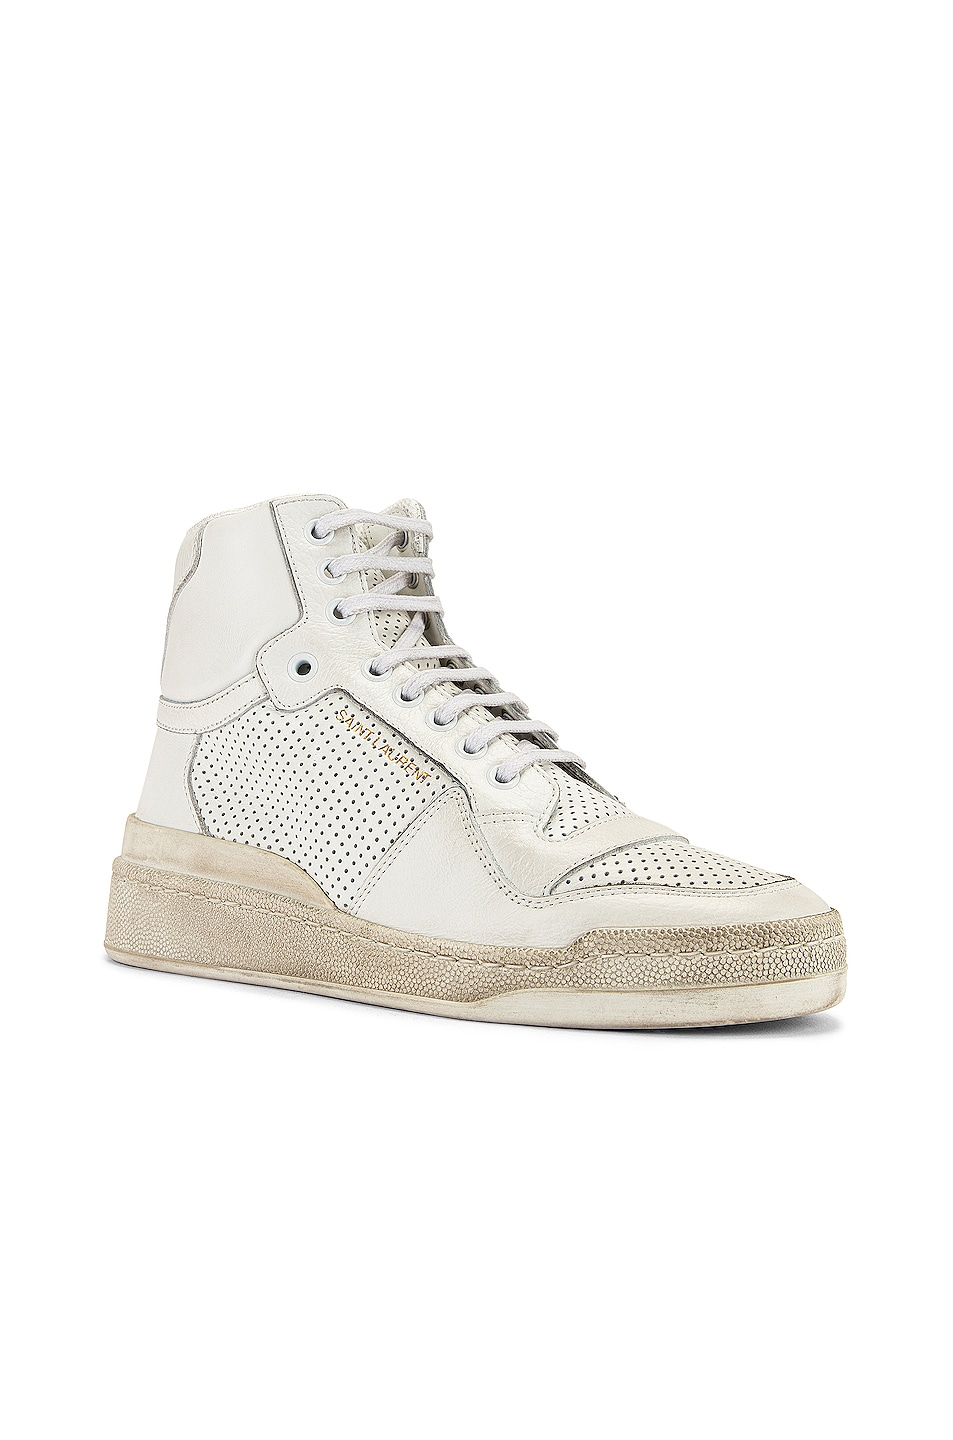 Image 2 of Saint Laurent High Top Sneakers in White